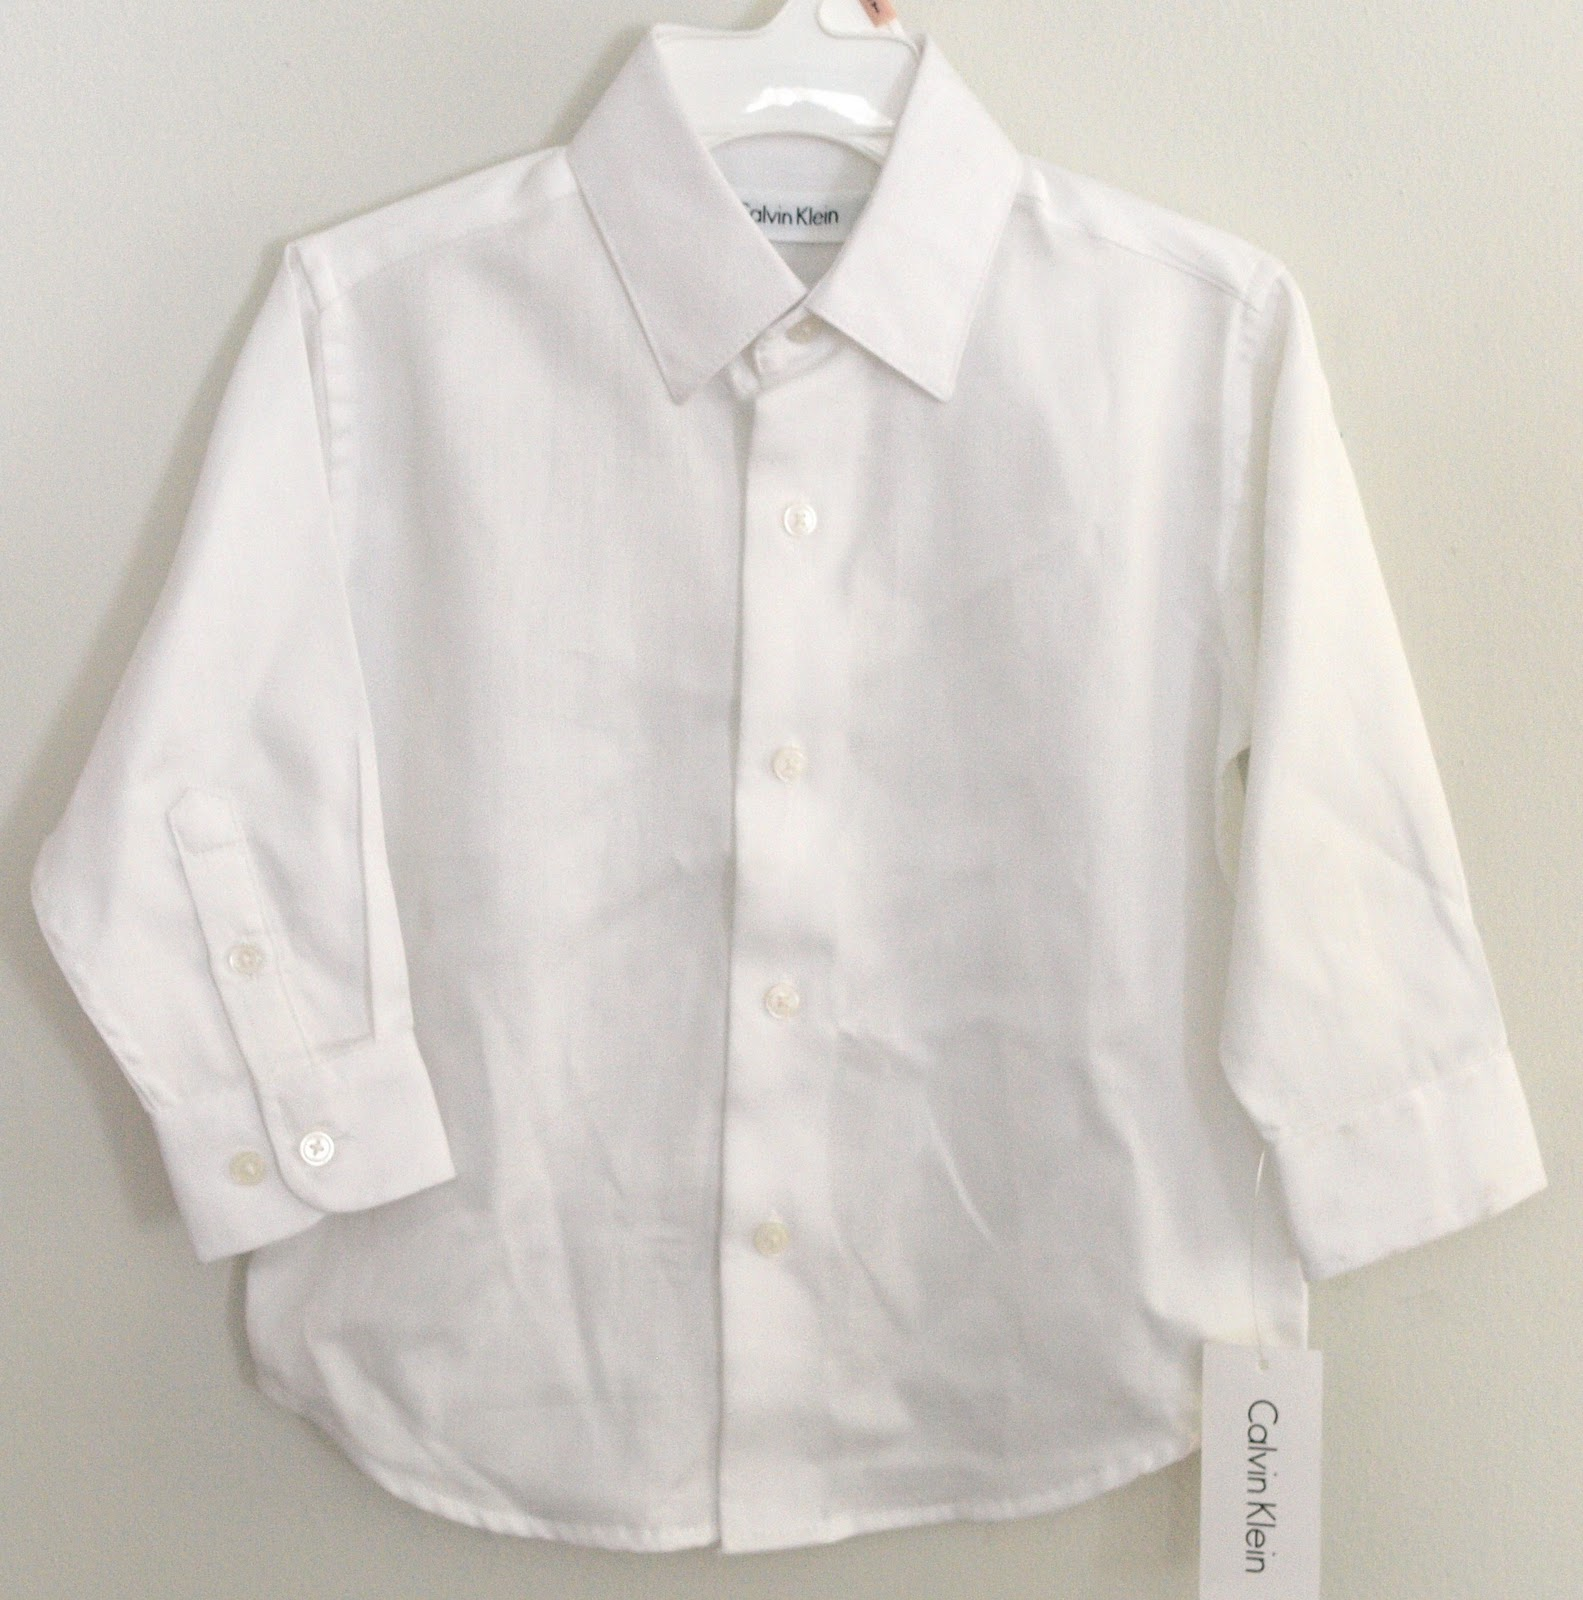 Pebbles Babies Calvin Klein Toddler Boy White Dress Shirt 2t